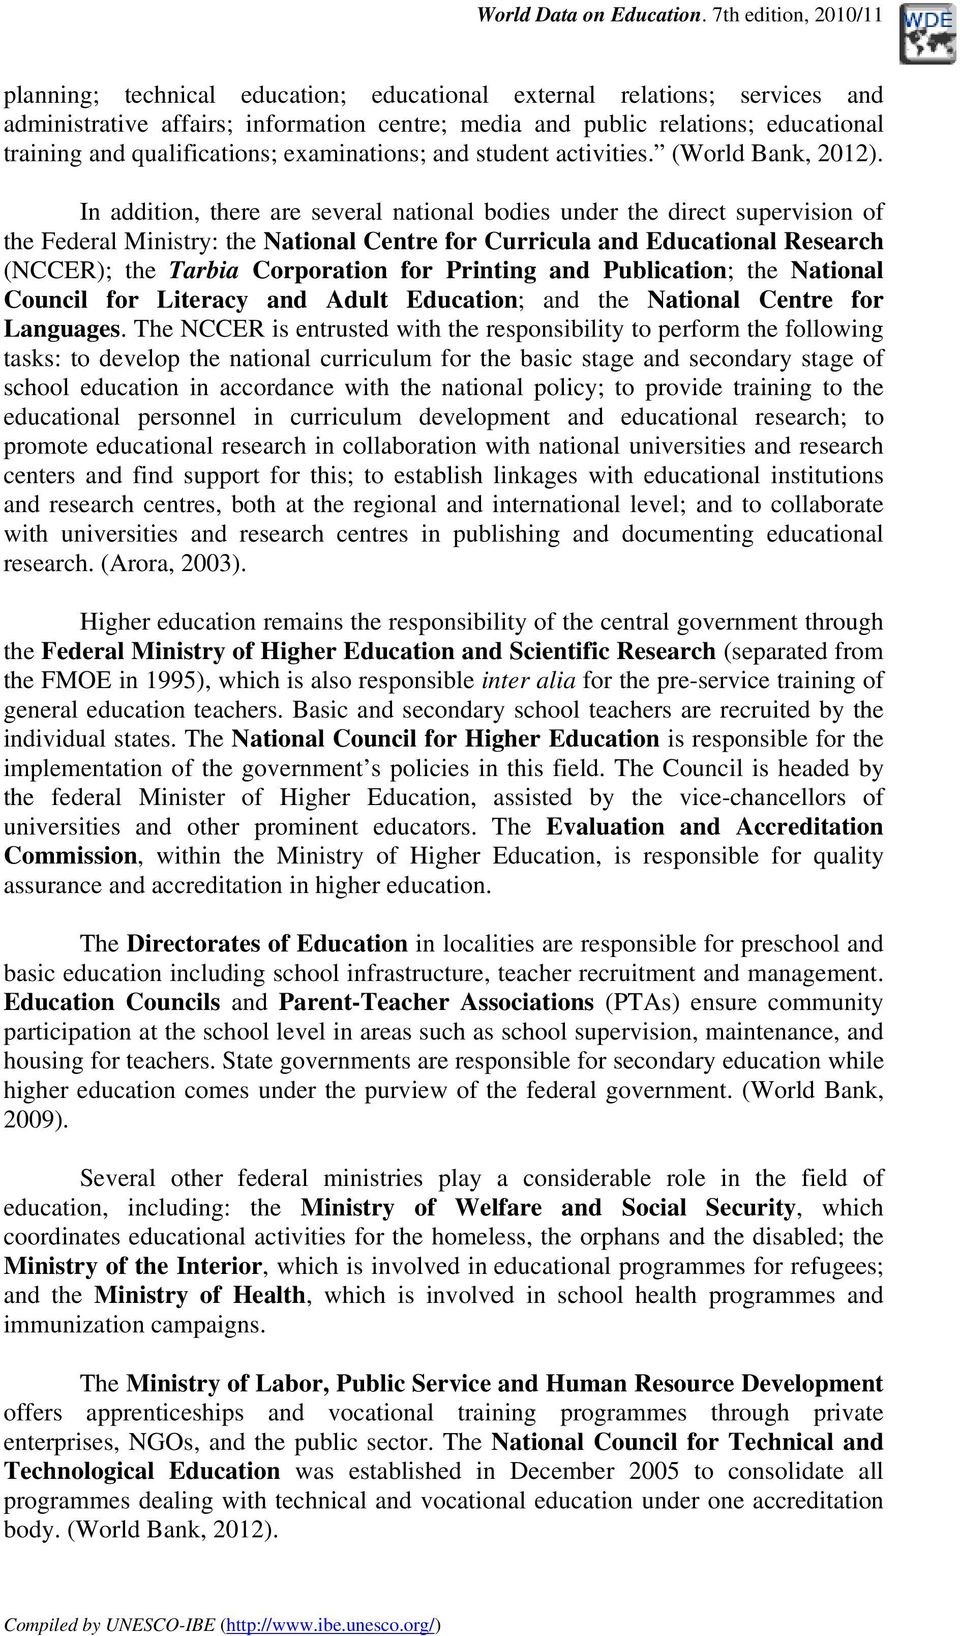 In addition, there are several national bodies under the direct supervision of the Federal Ministry: the National Centre for Curricula and Educational Research (NCCER); the Tarbia Corporation for